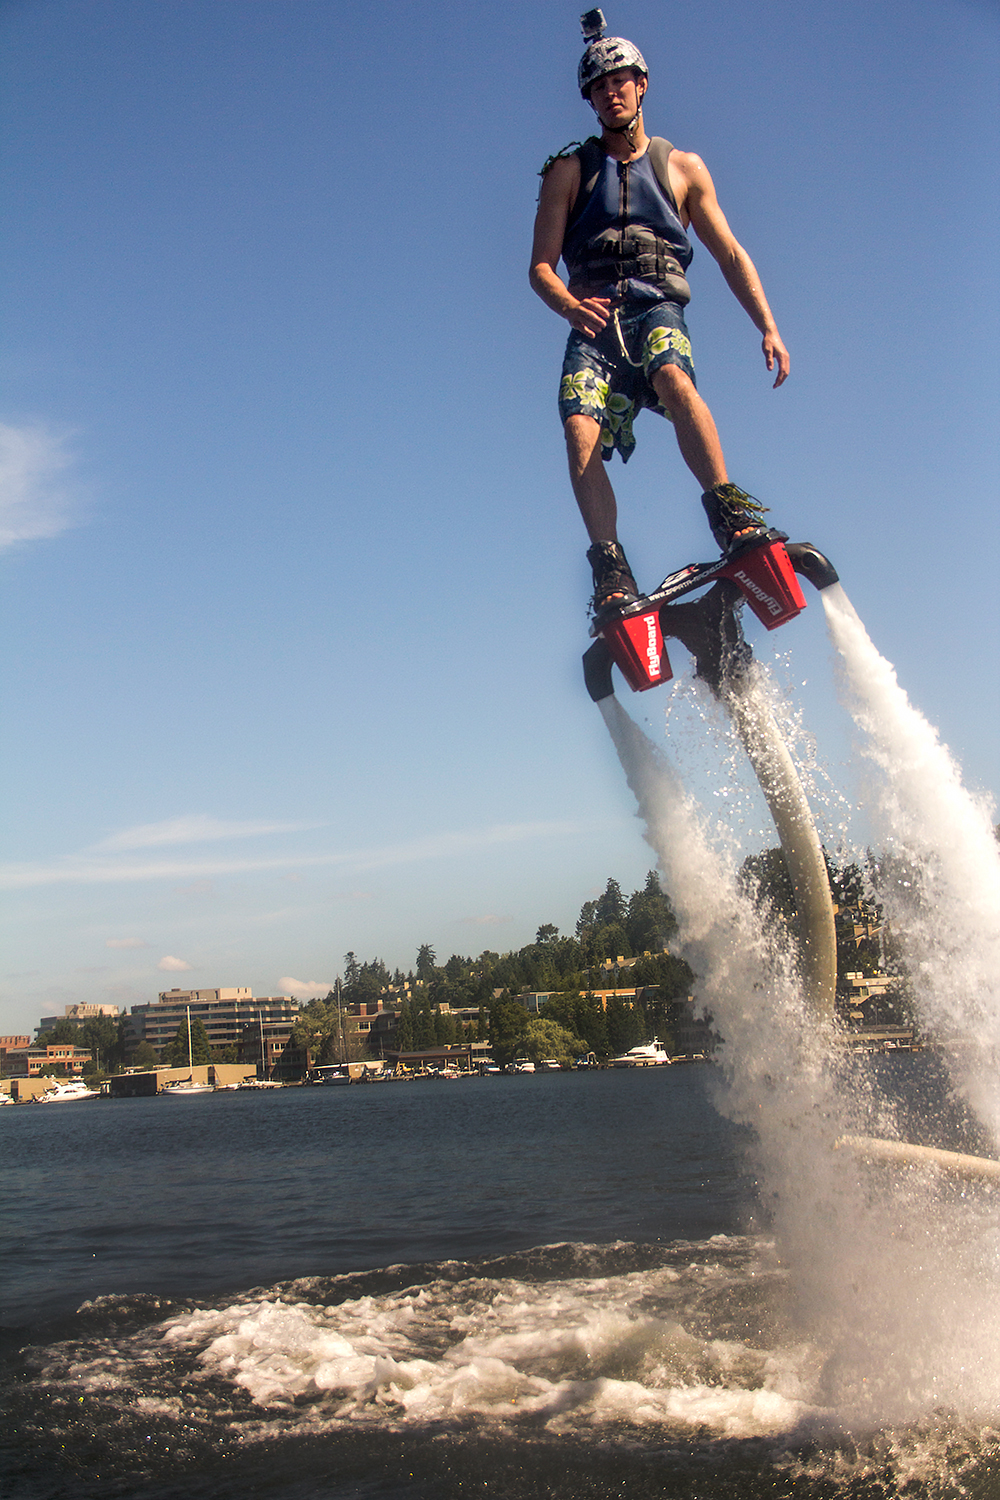 Sport Flying Flyboard Sends Rider Flying Out Of Water Soaring Through Air